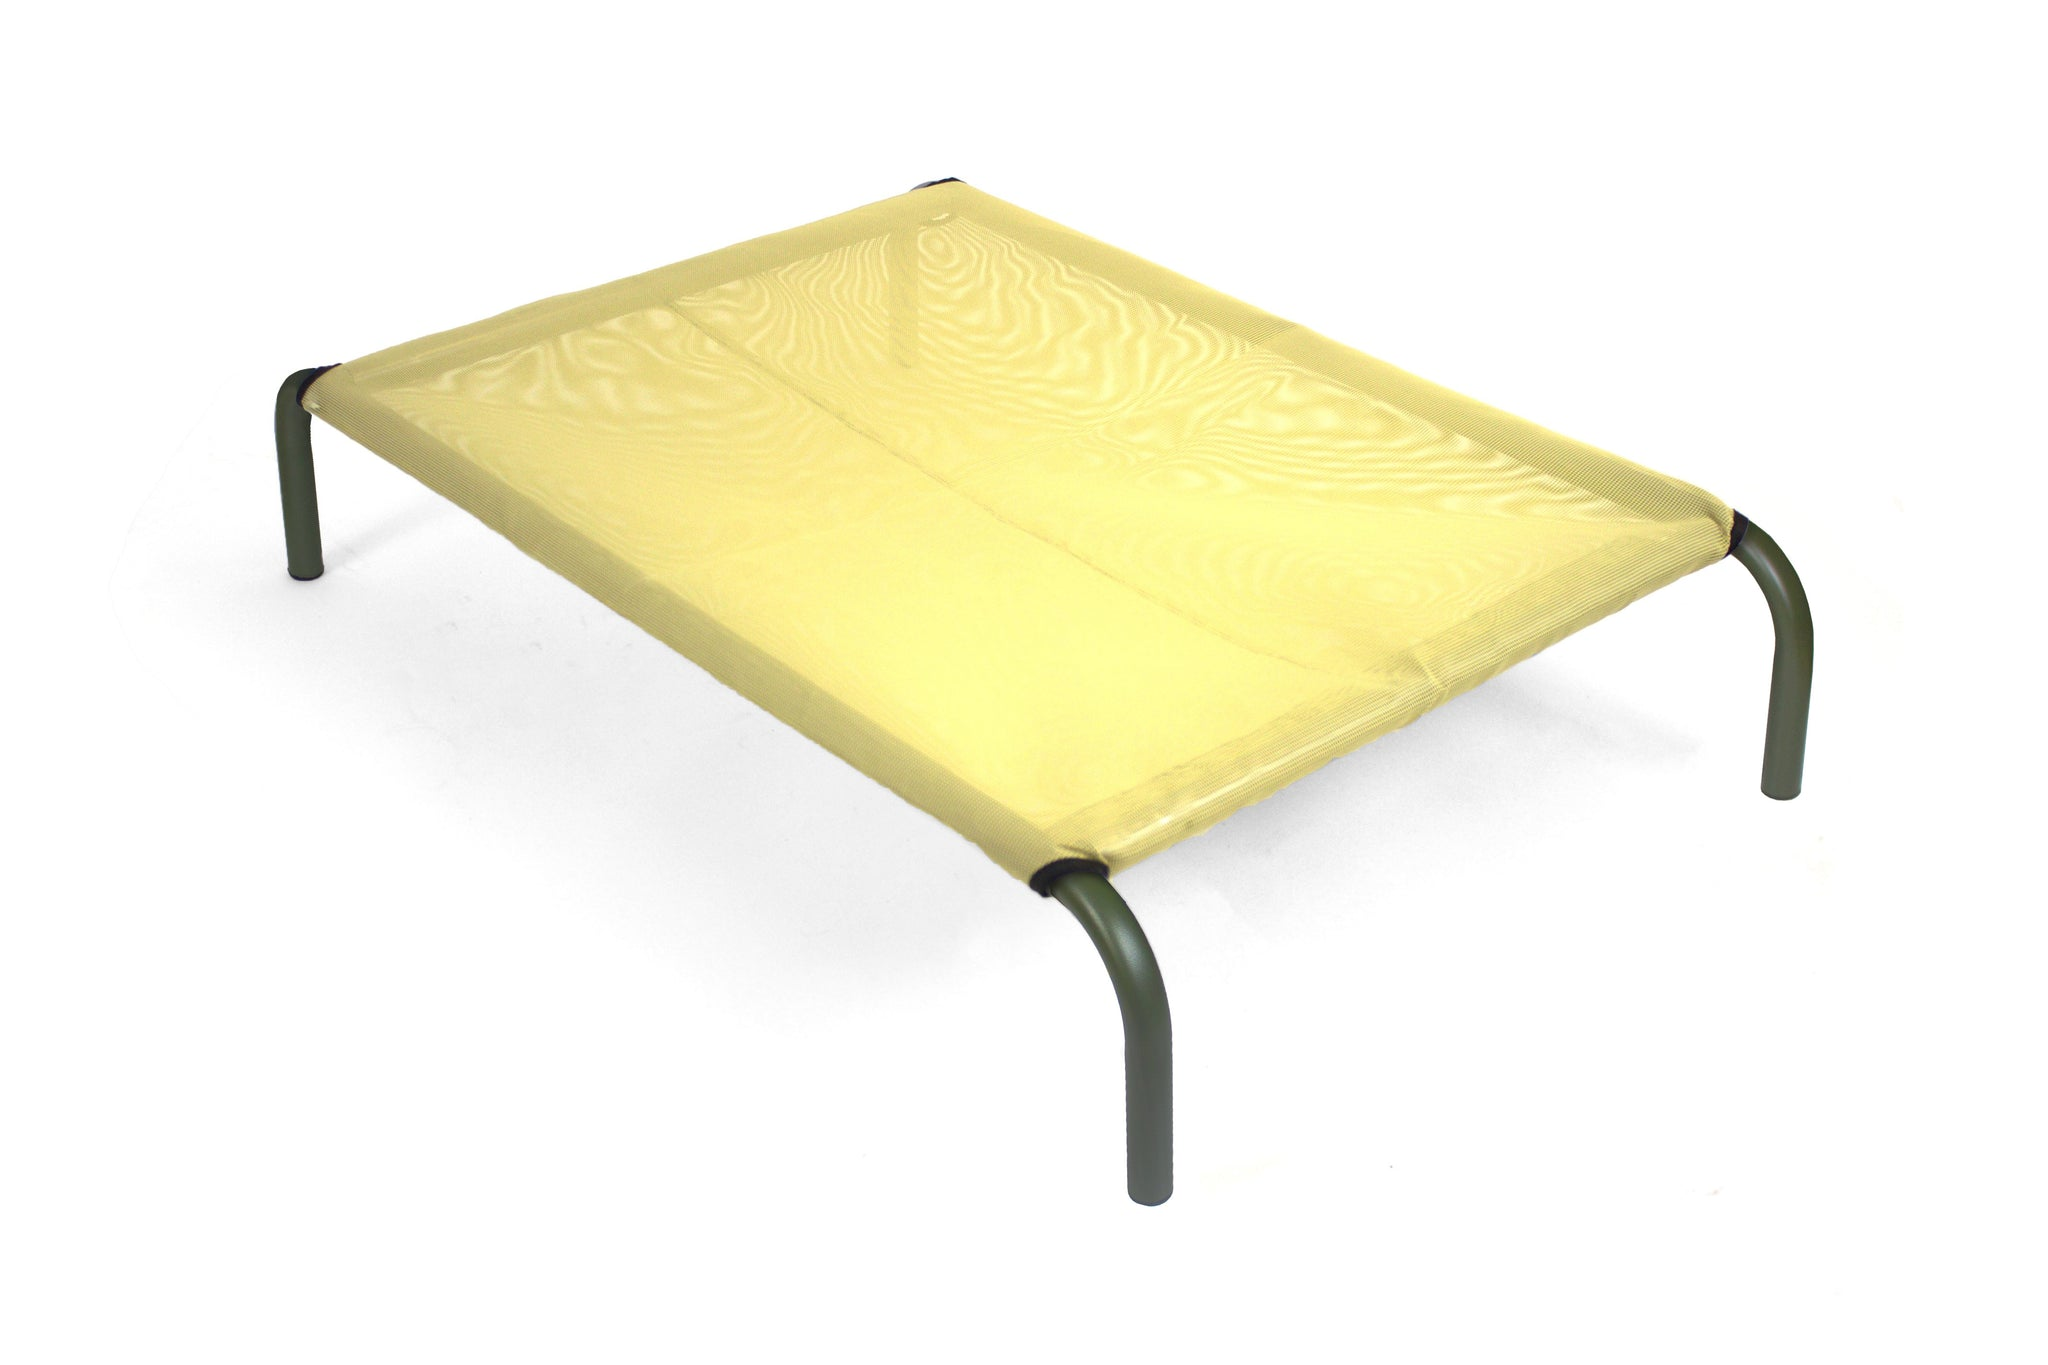 HiK9 Bed with Cream Mesh Cover